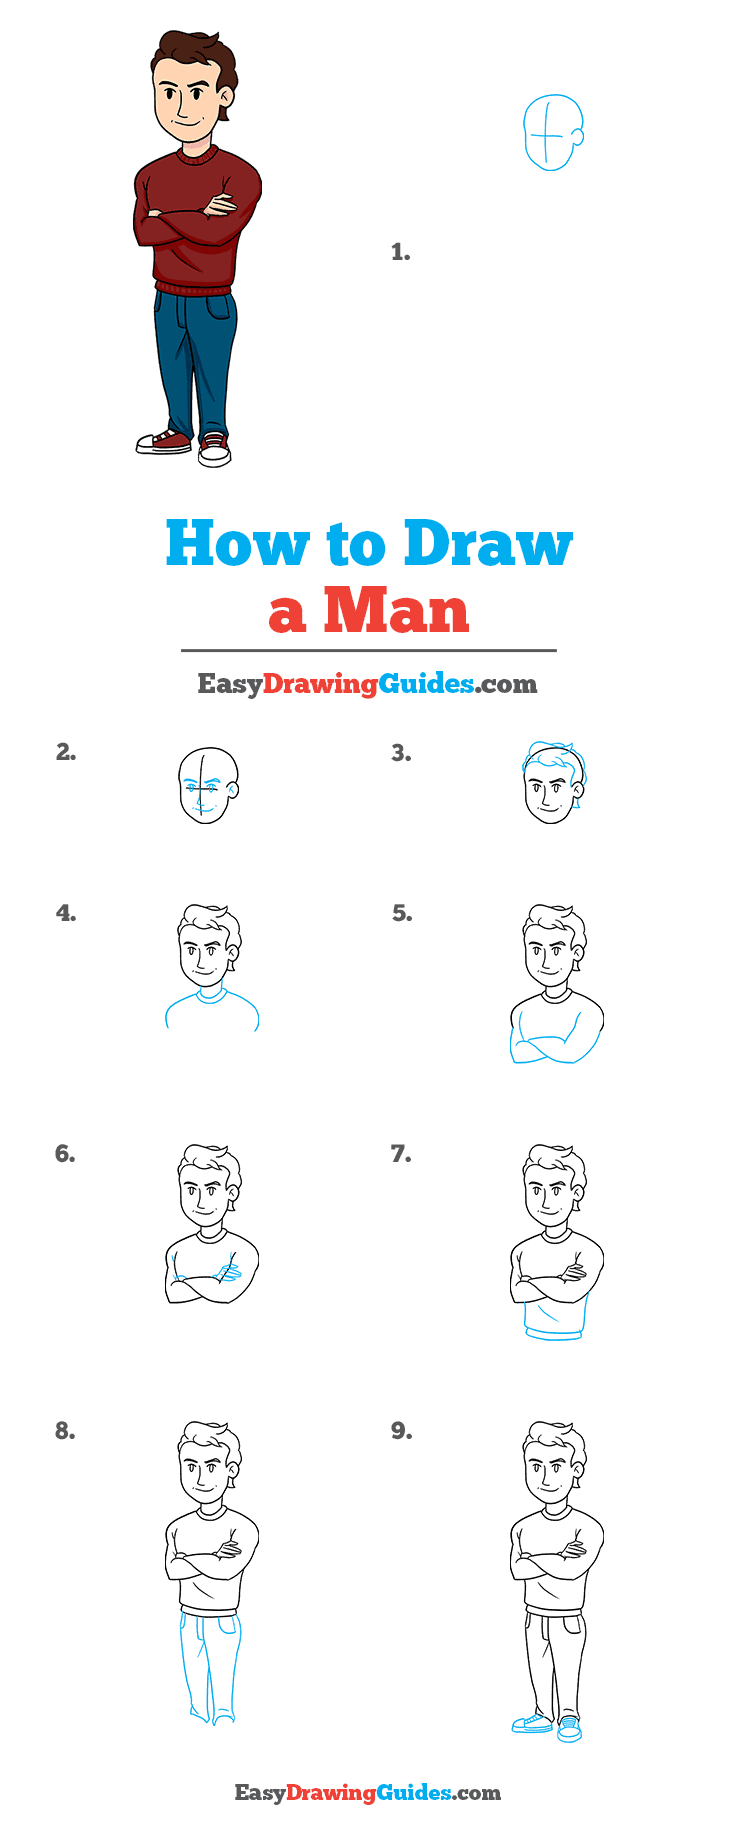 How to Draw a Man Step by Step Tutorial Image